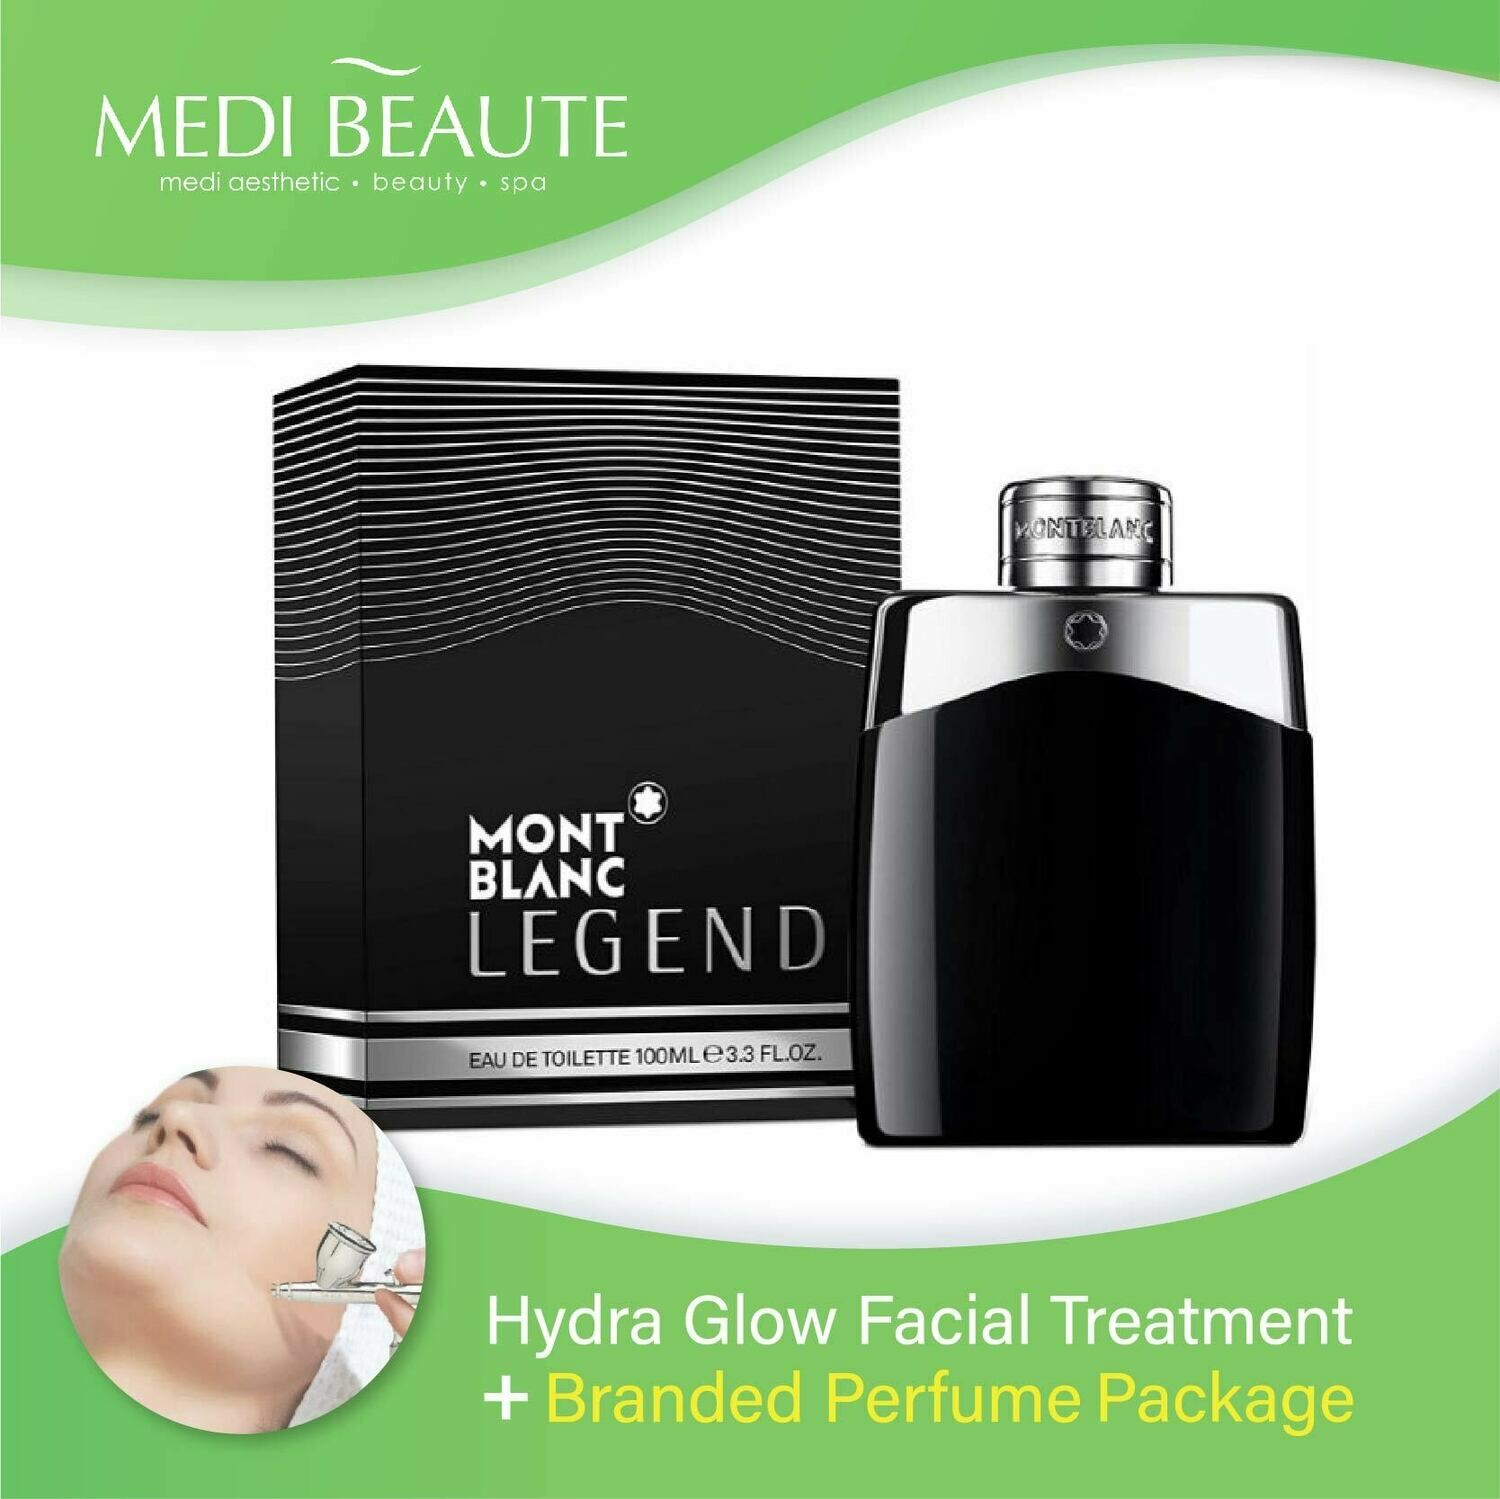 Medi Beaute Hydra Glow Facial + Branded Perfume ( Mont Blanc Legend EDT Men 100ml ) Package